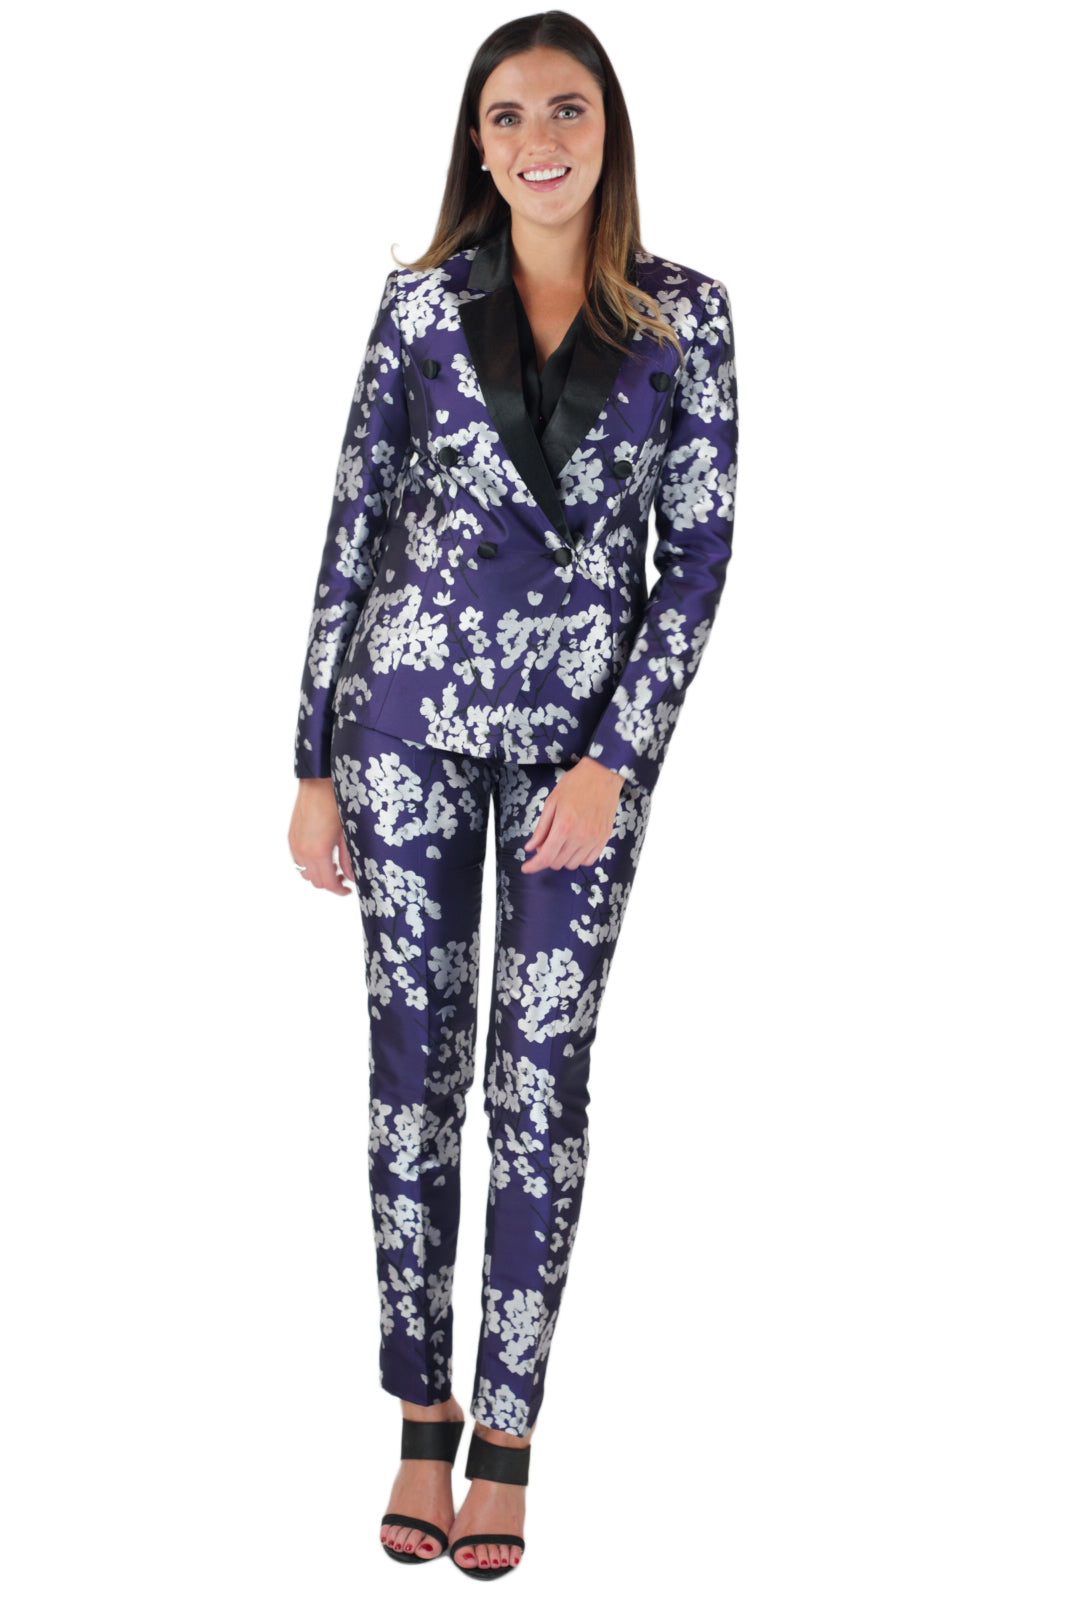 No Shrinking Violet Suit